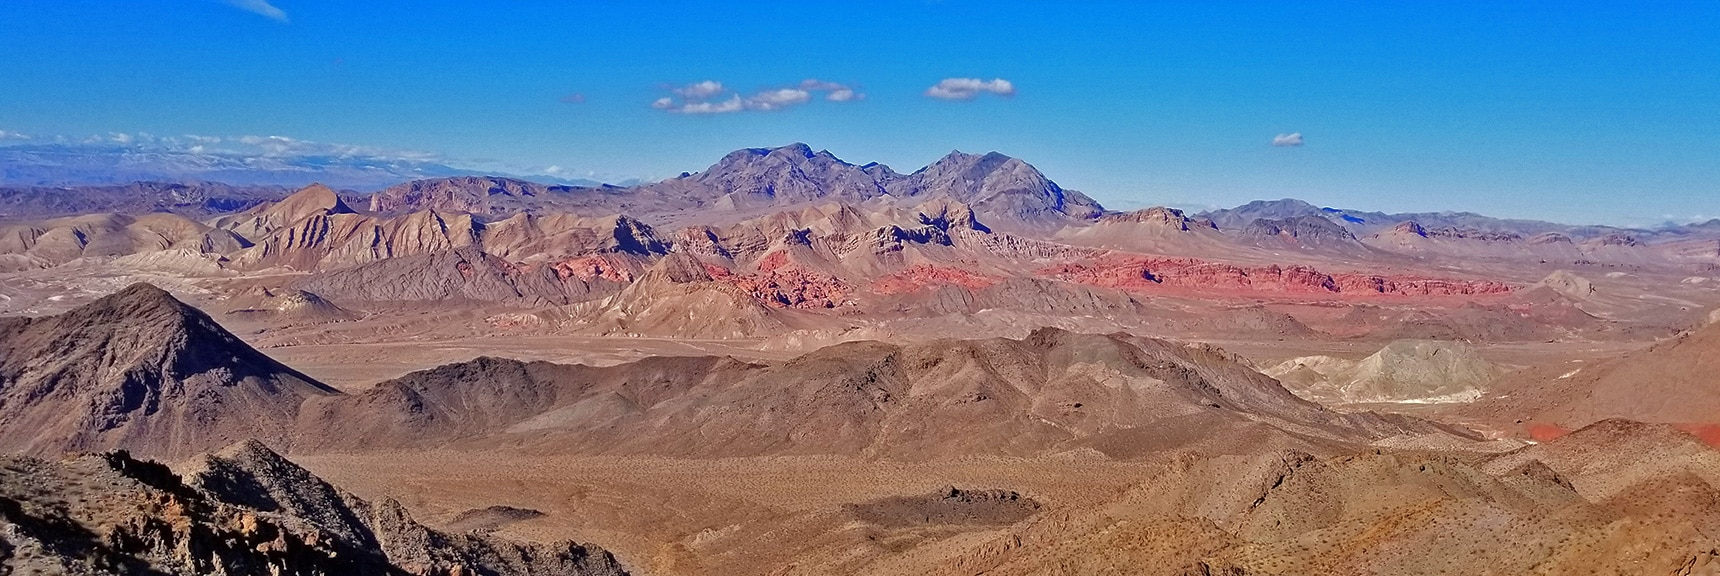 Bowl of Fire and Muddy Mts. From Hamblin Mt. Summit | Hamblin Mountain, Lake Mead National Conservation Area, Nevada